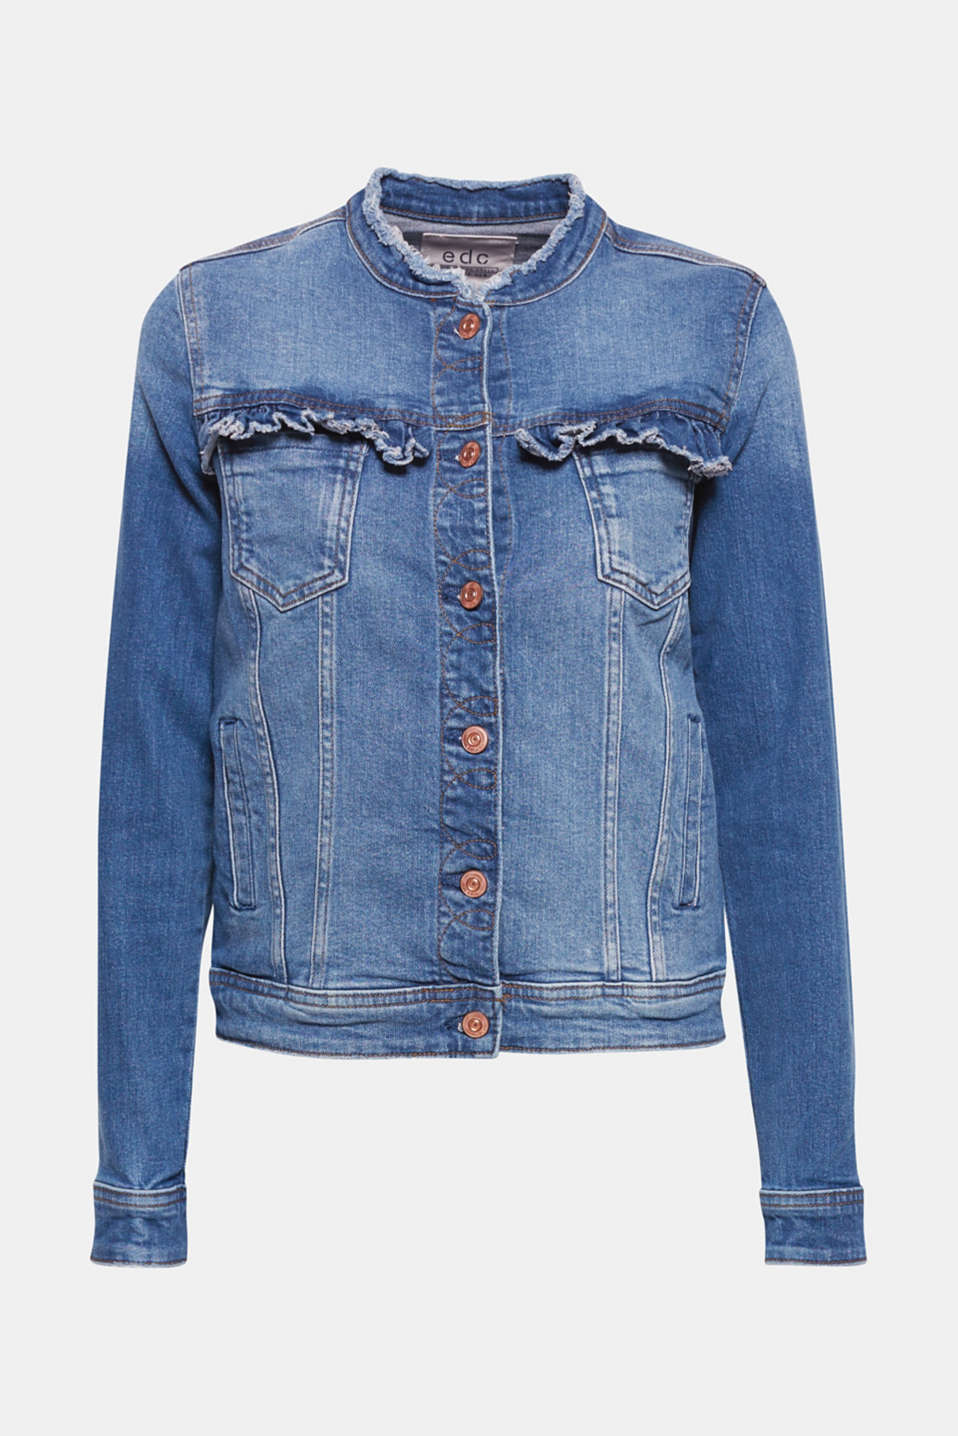 A classic with a twist, this denim jacket features frayed edges, feminine frills and zip details.